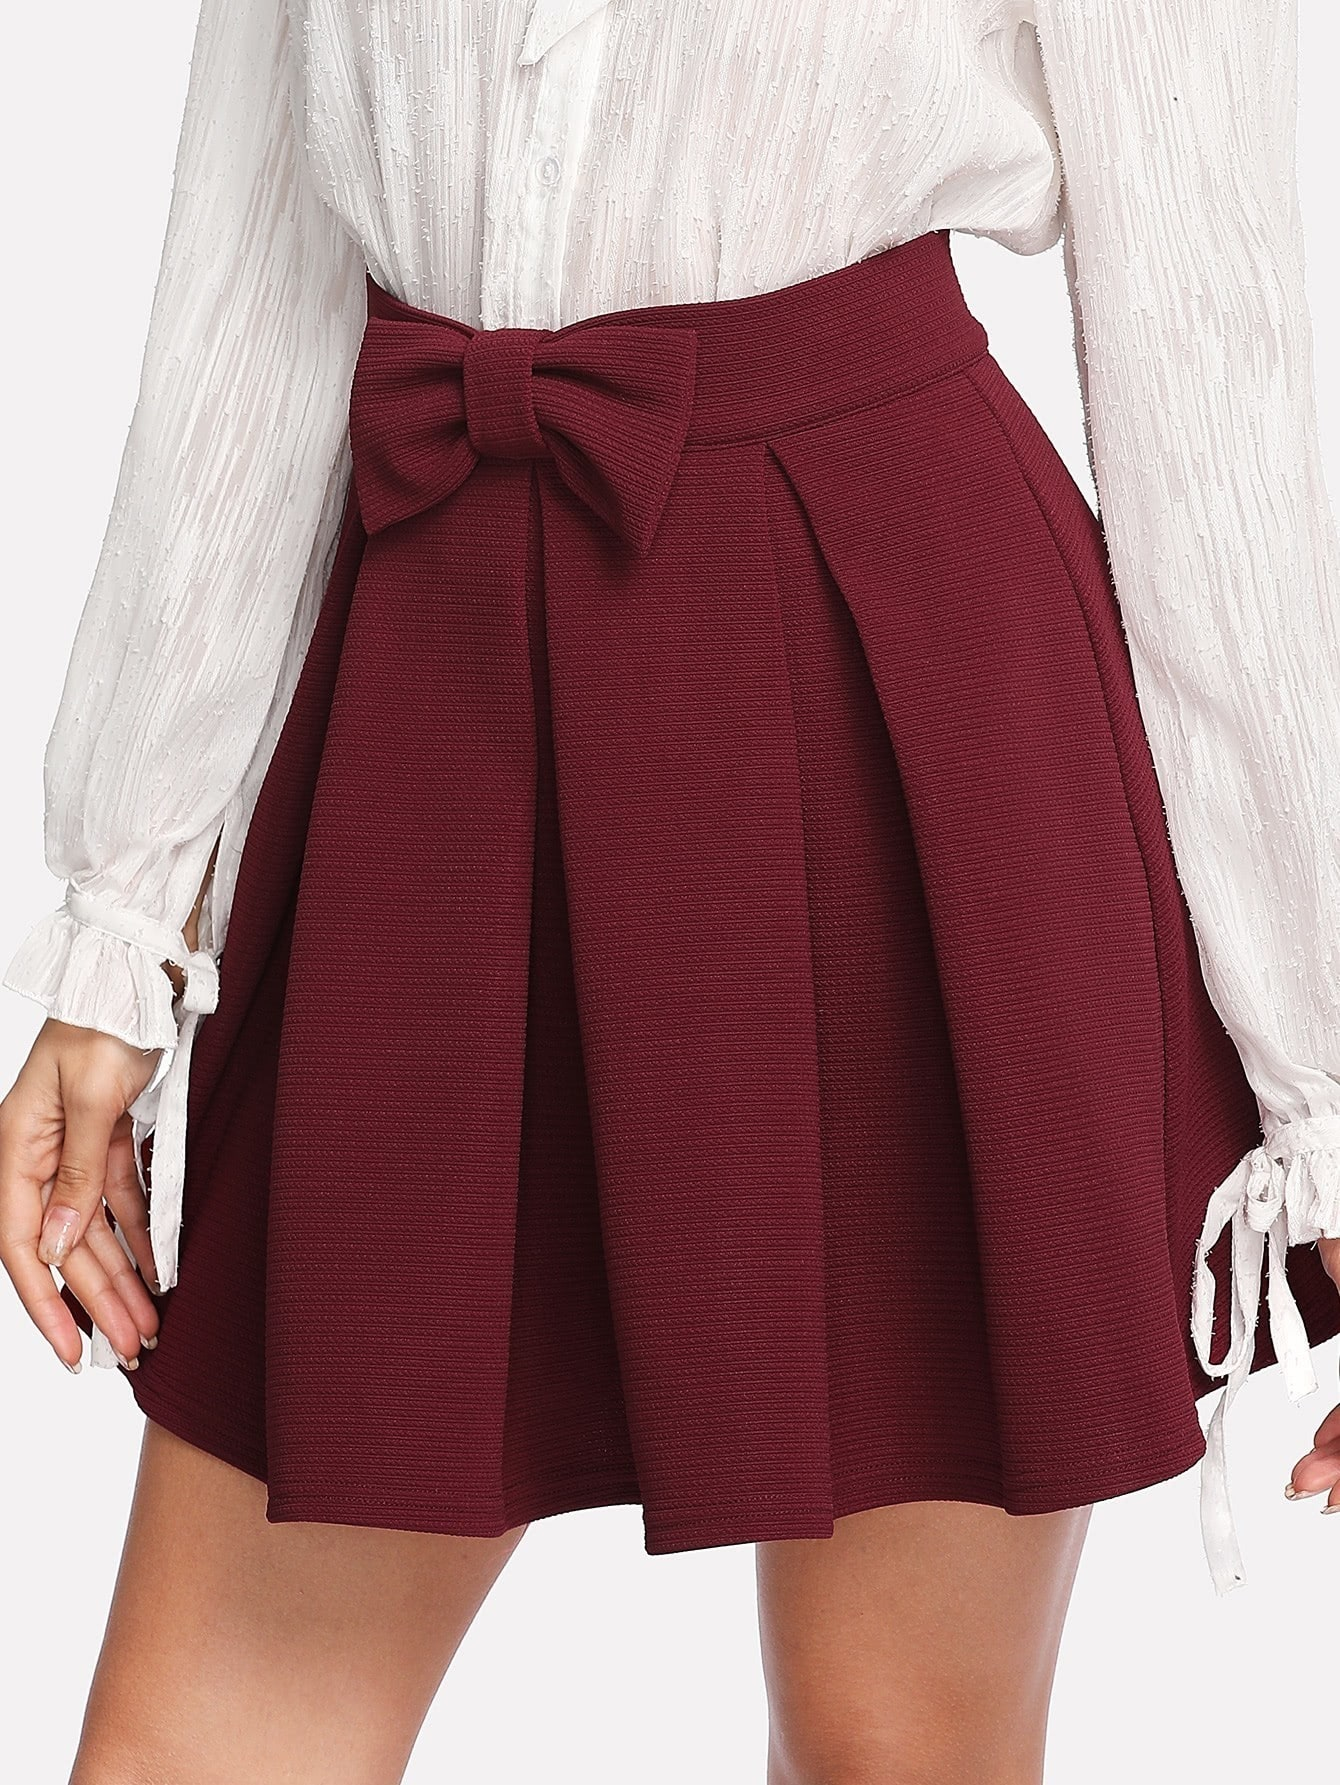 Bow Front Box Pleated Textured Skirt box pleated suede skirt